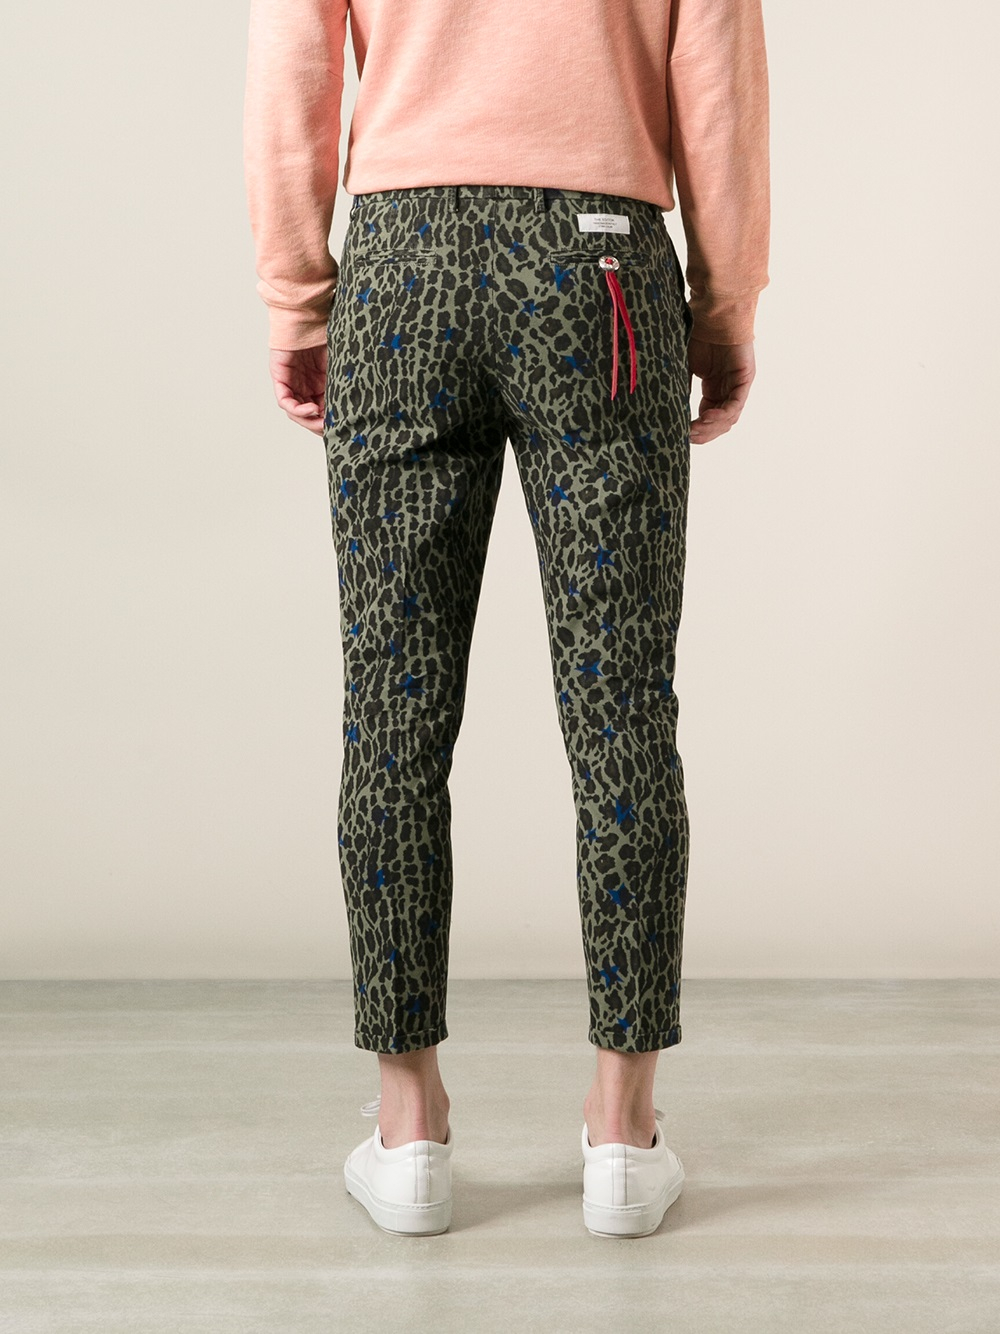 662706e52300 Saucony Cropped Leopard Print Trousers in Green for Men - Lyst